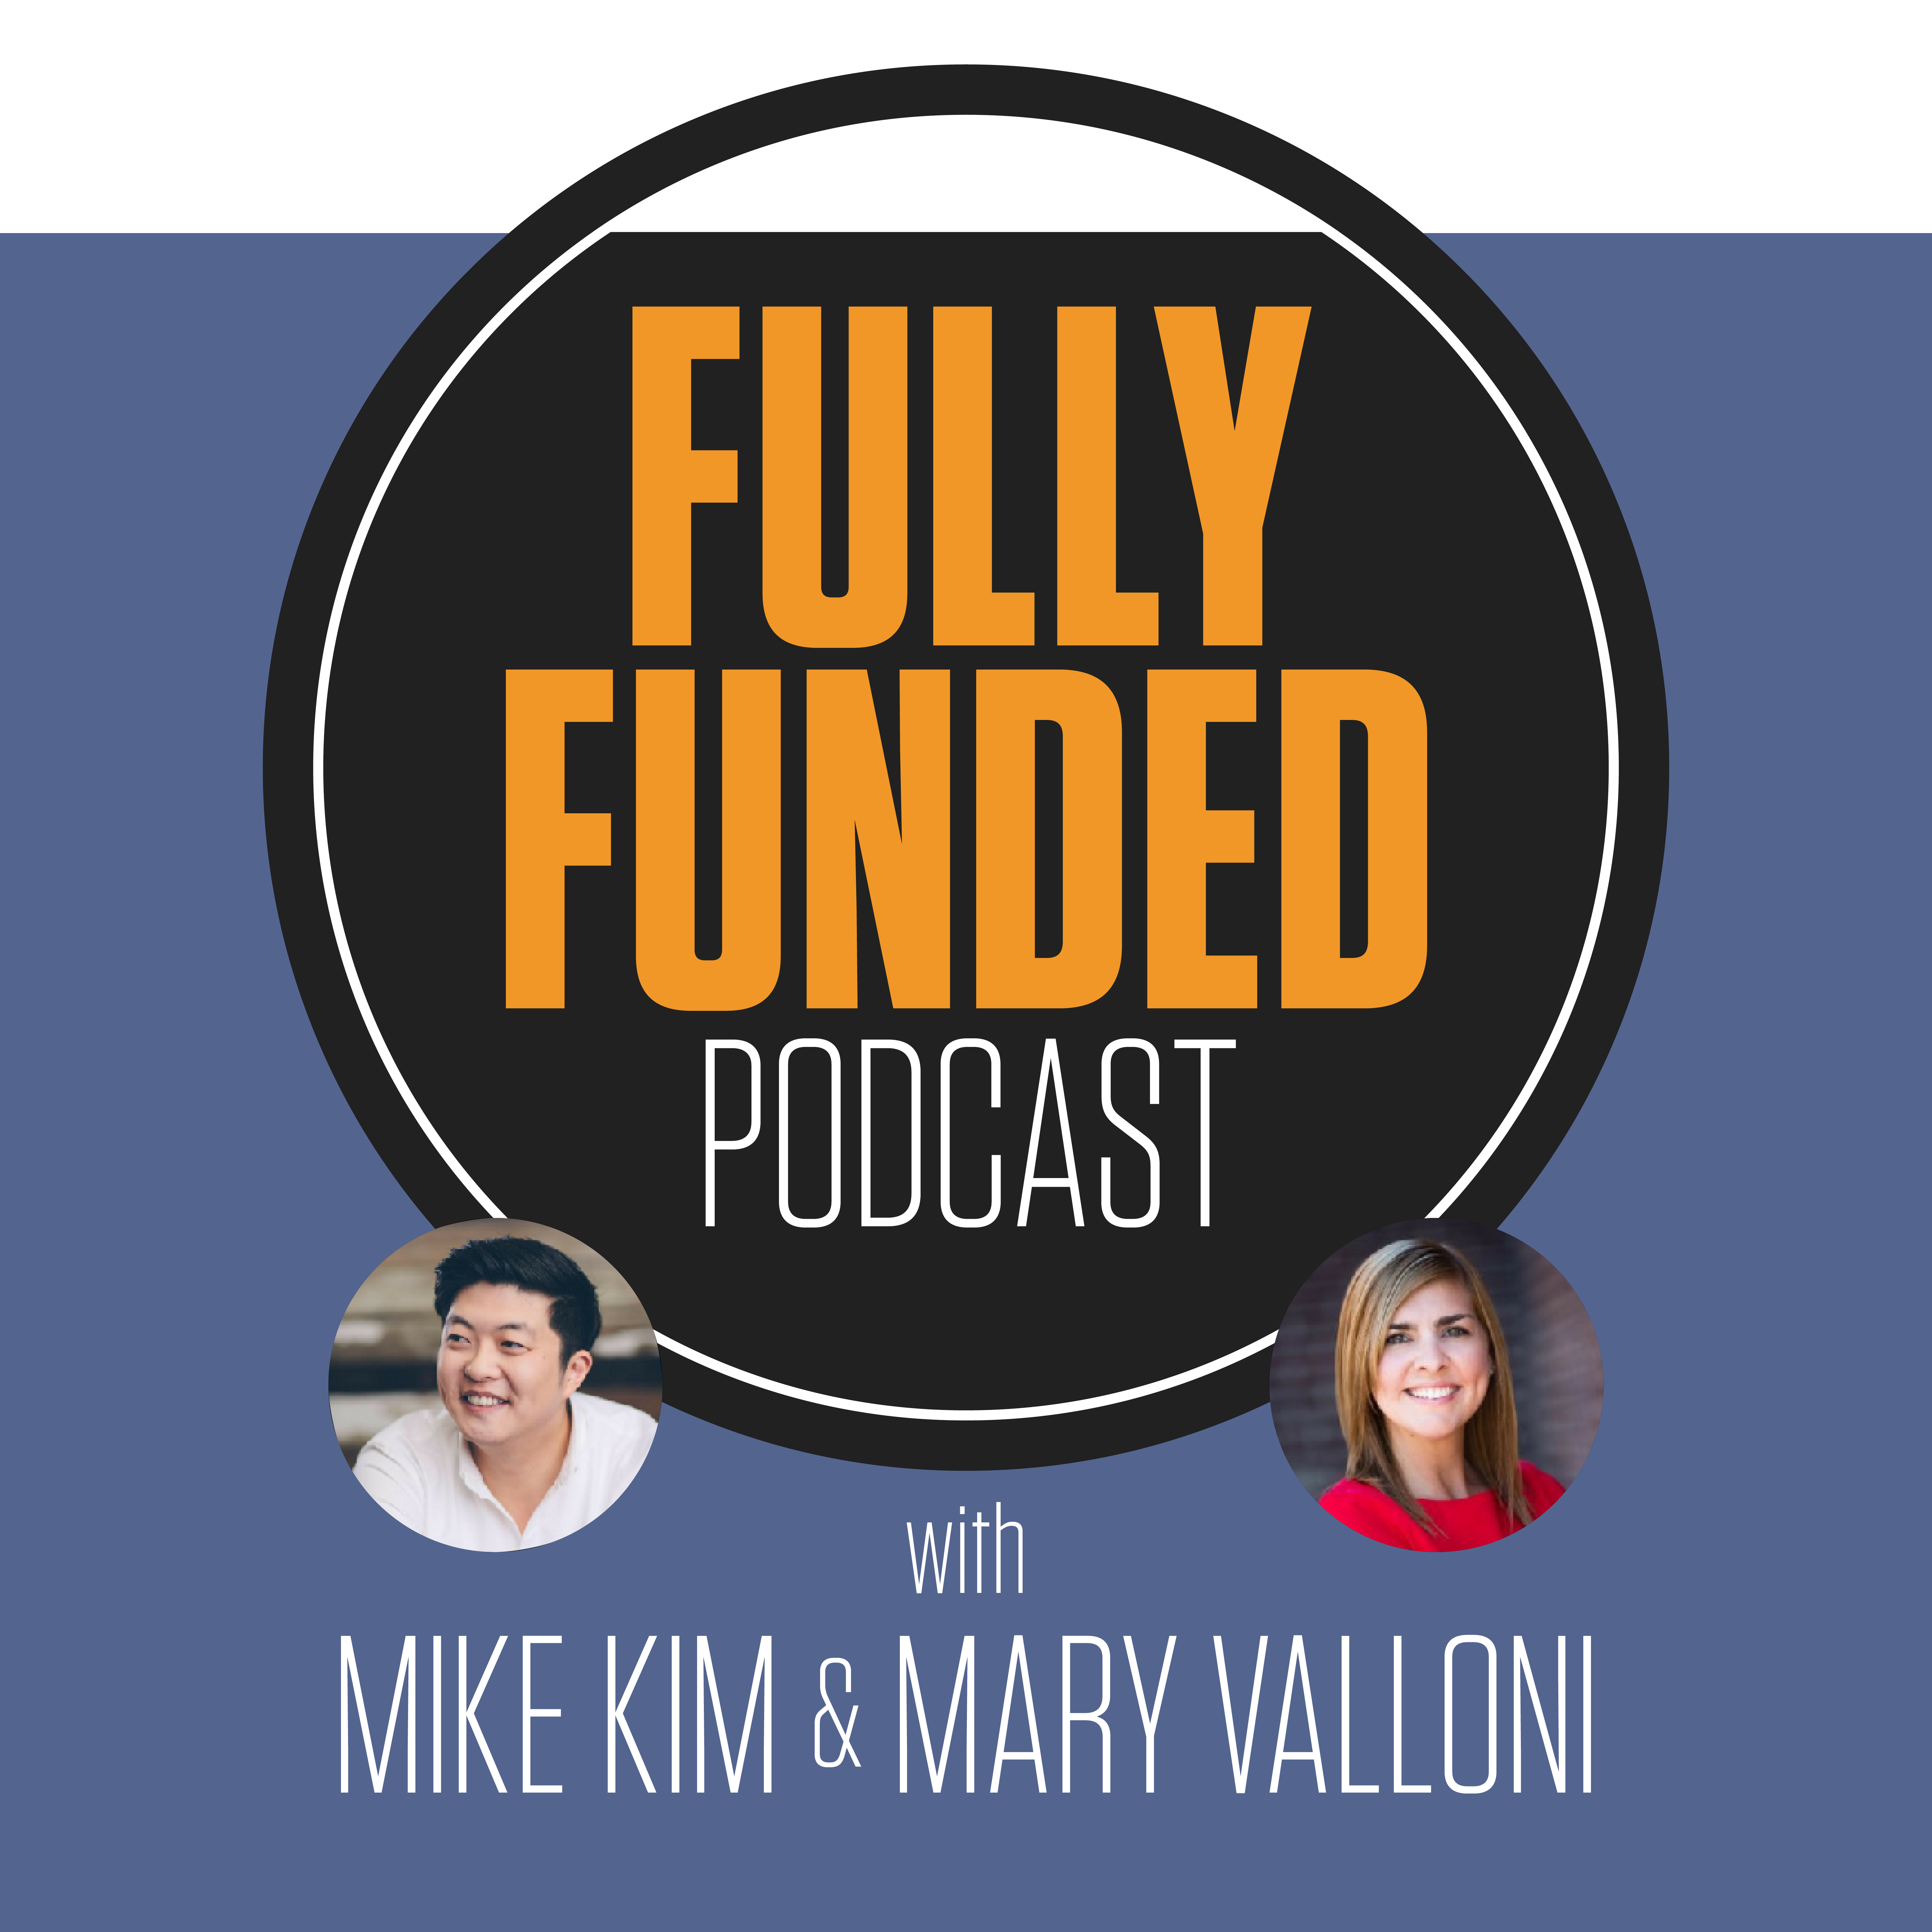 Fully Funded Podcast with Mike Kim & Mary Valloni show art